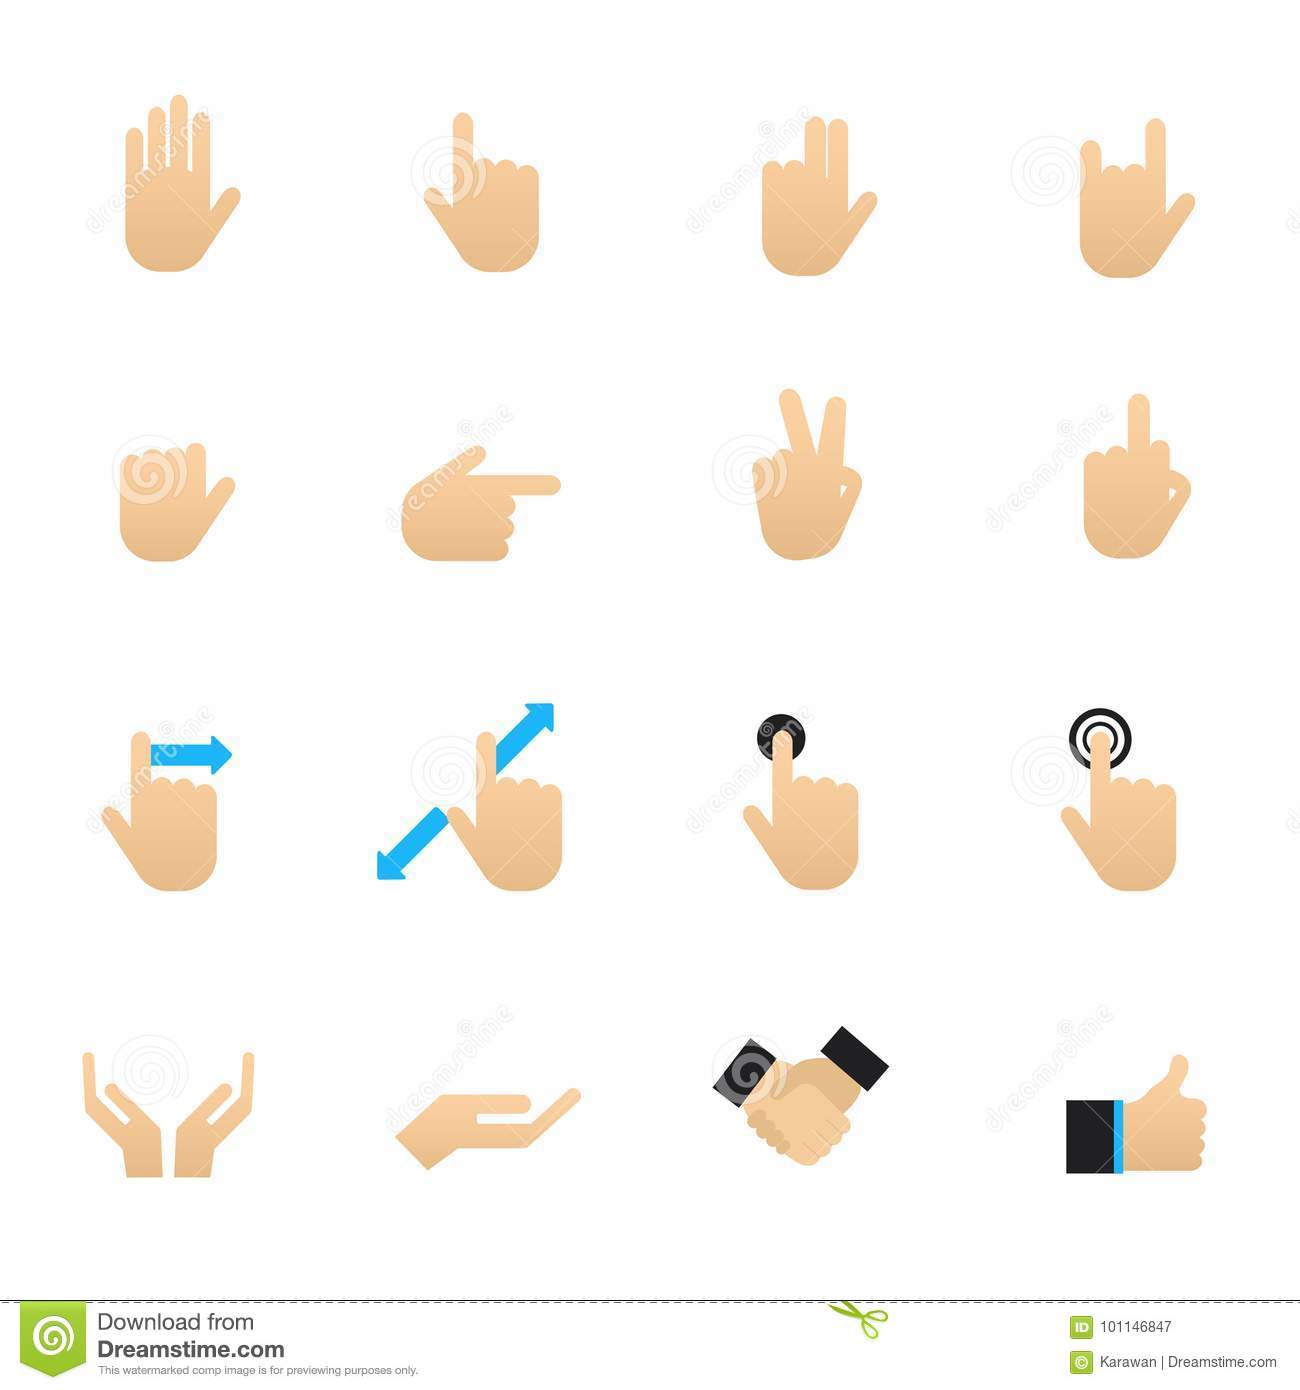 Hand and touch gestures set of signs and symbols vector hand and touch gestures set of signs and symbols vector illustration color icons flat style buycottarizona Choice Image